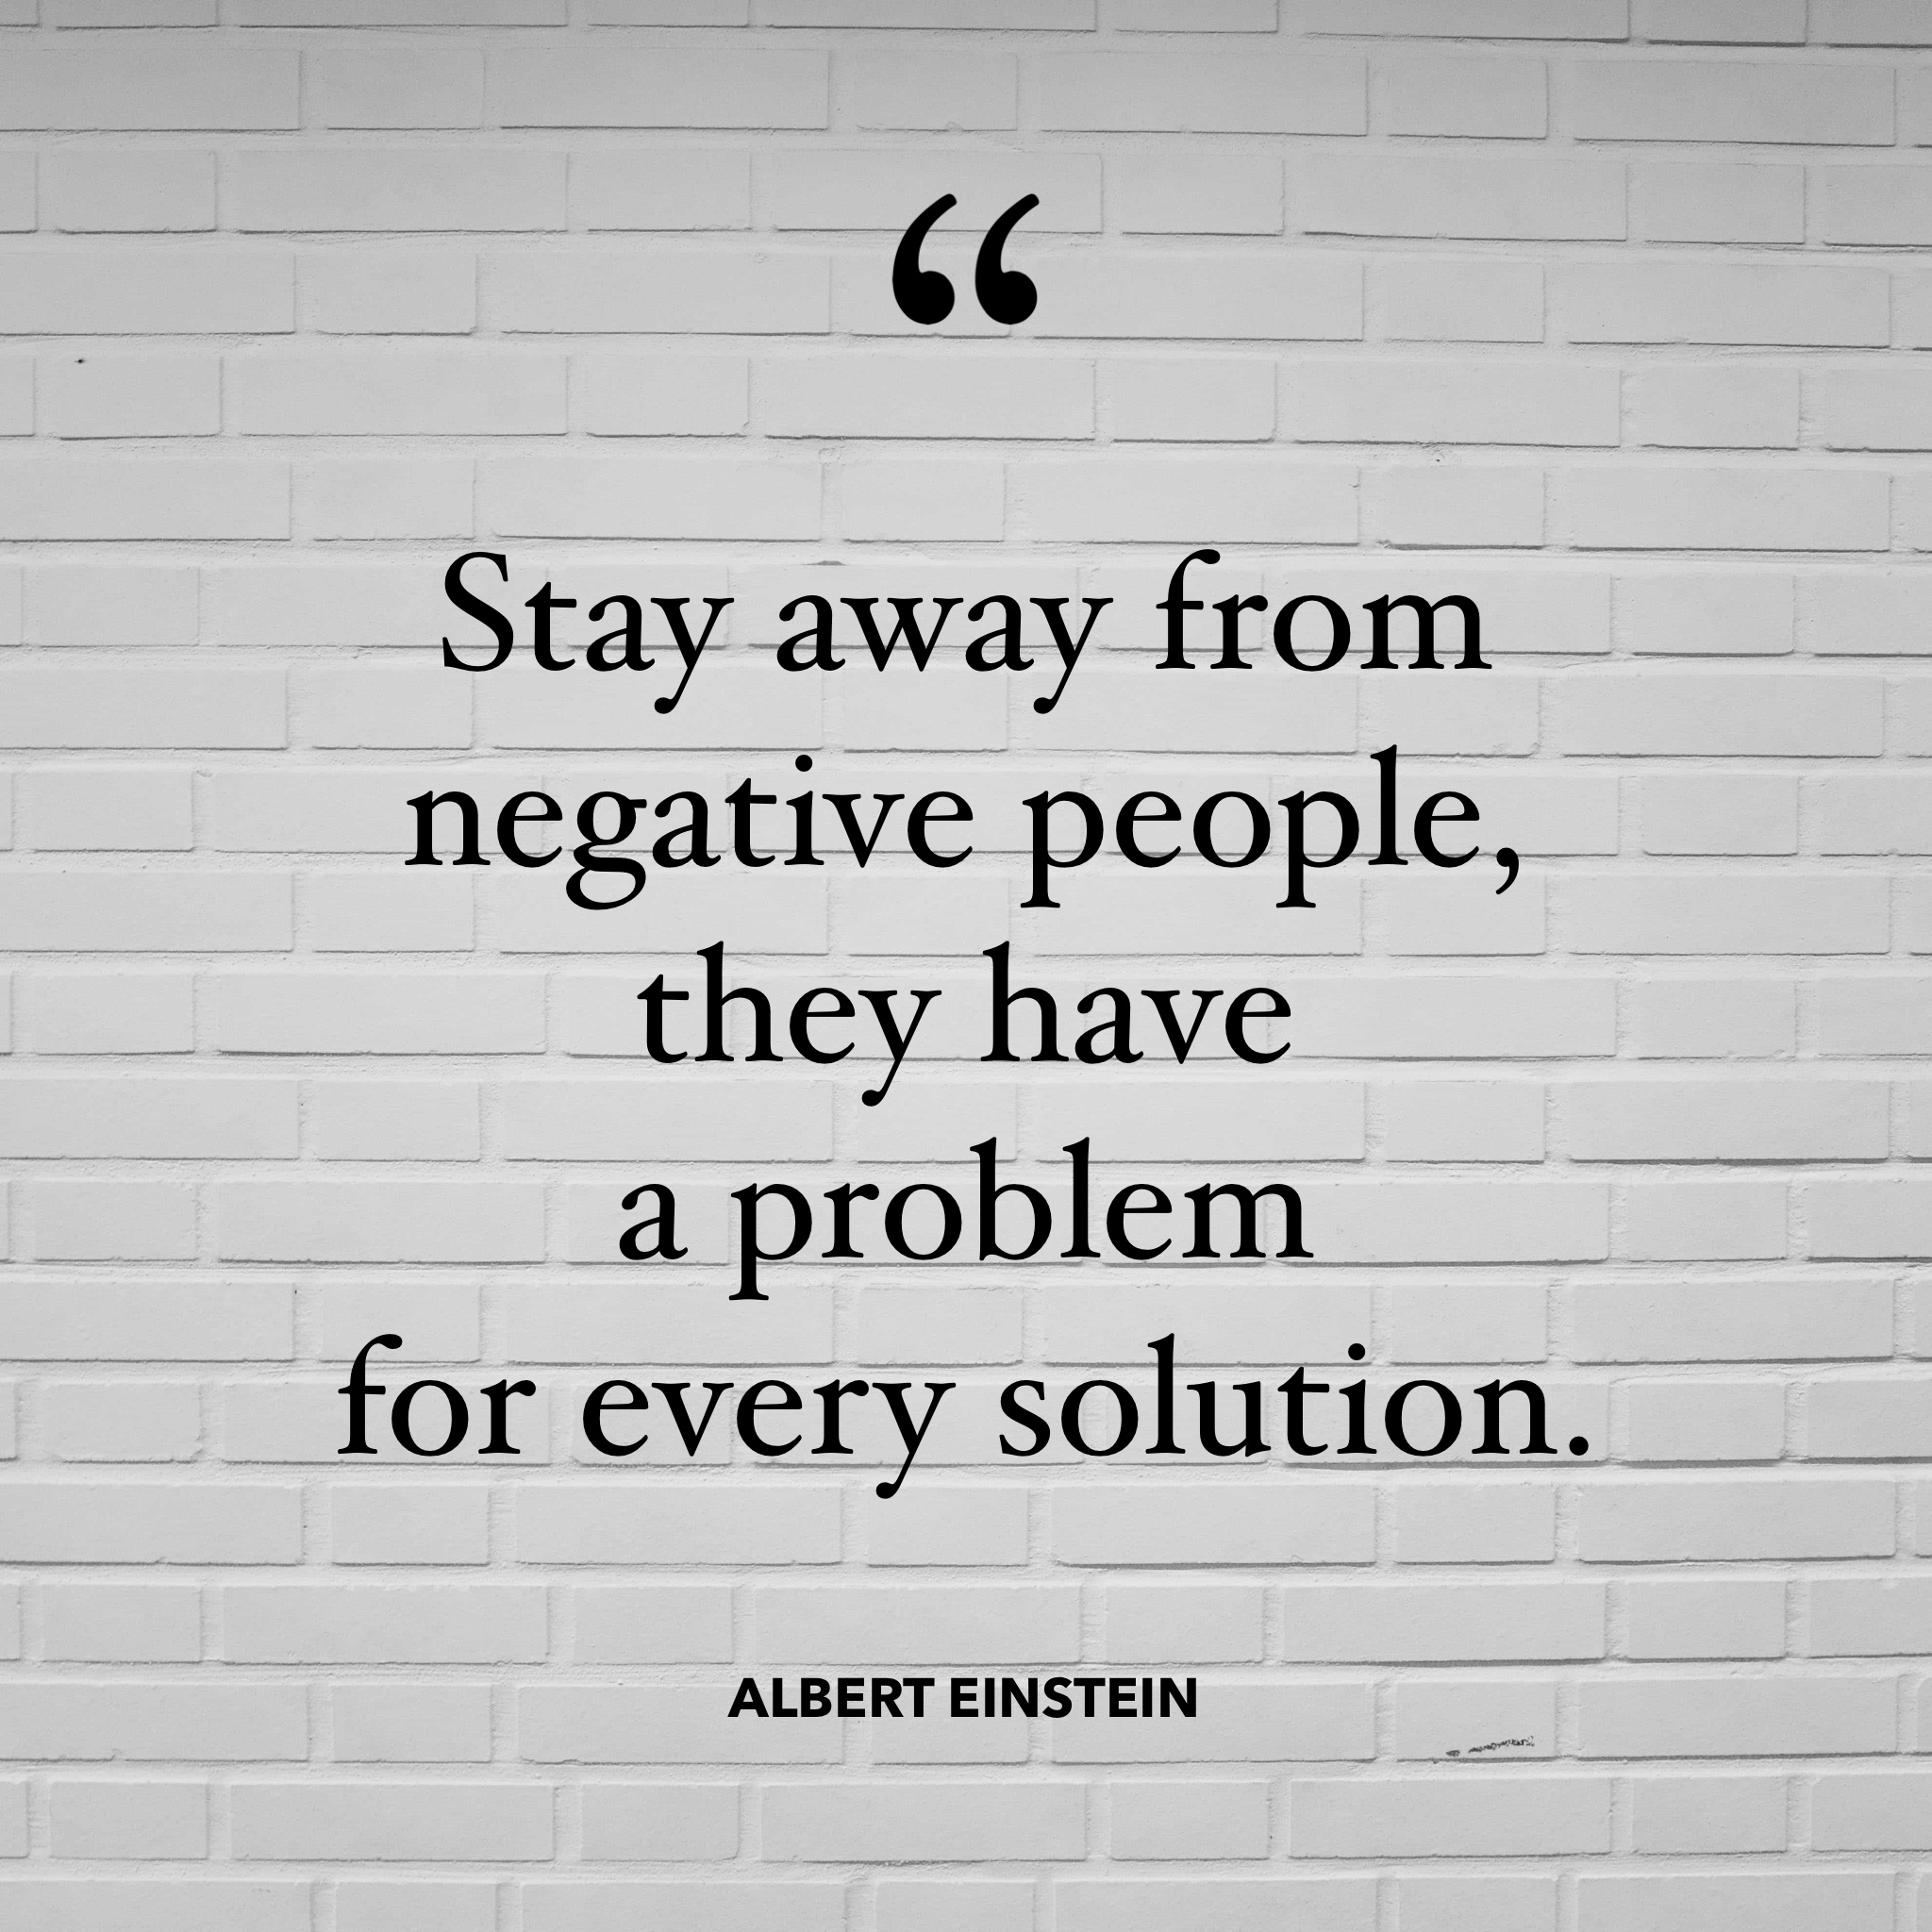 Quote: Stay away from negative people, they have a problem for every solution. Albert Einstein